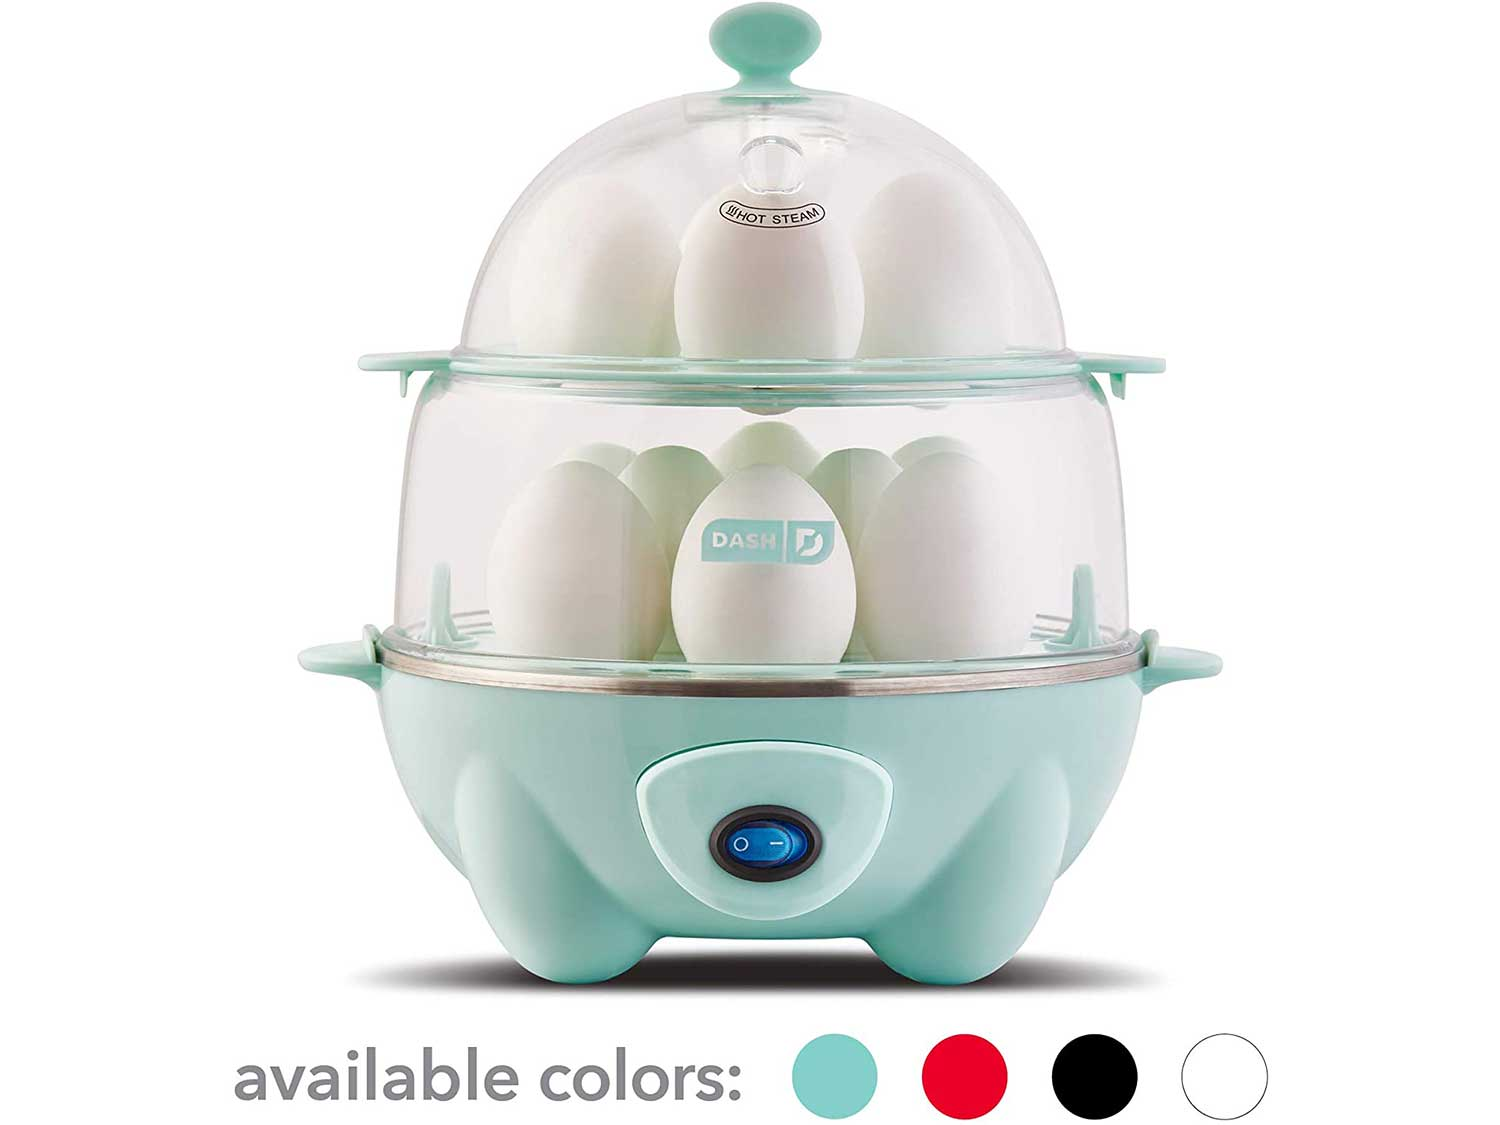 Dash DEC012AQ Deluxe Rapid Egg Cooker: Electric, 12 Capacity for Hard Boiled, Poached, Scrambled, Omelets, Steamed Vegetables, Seafood, Dumplings